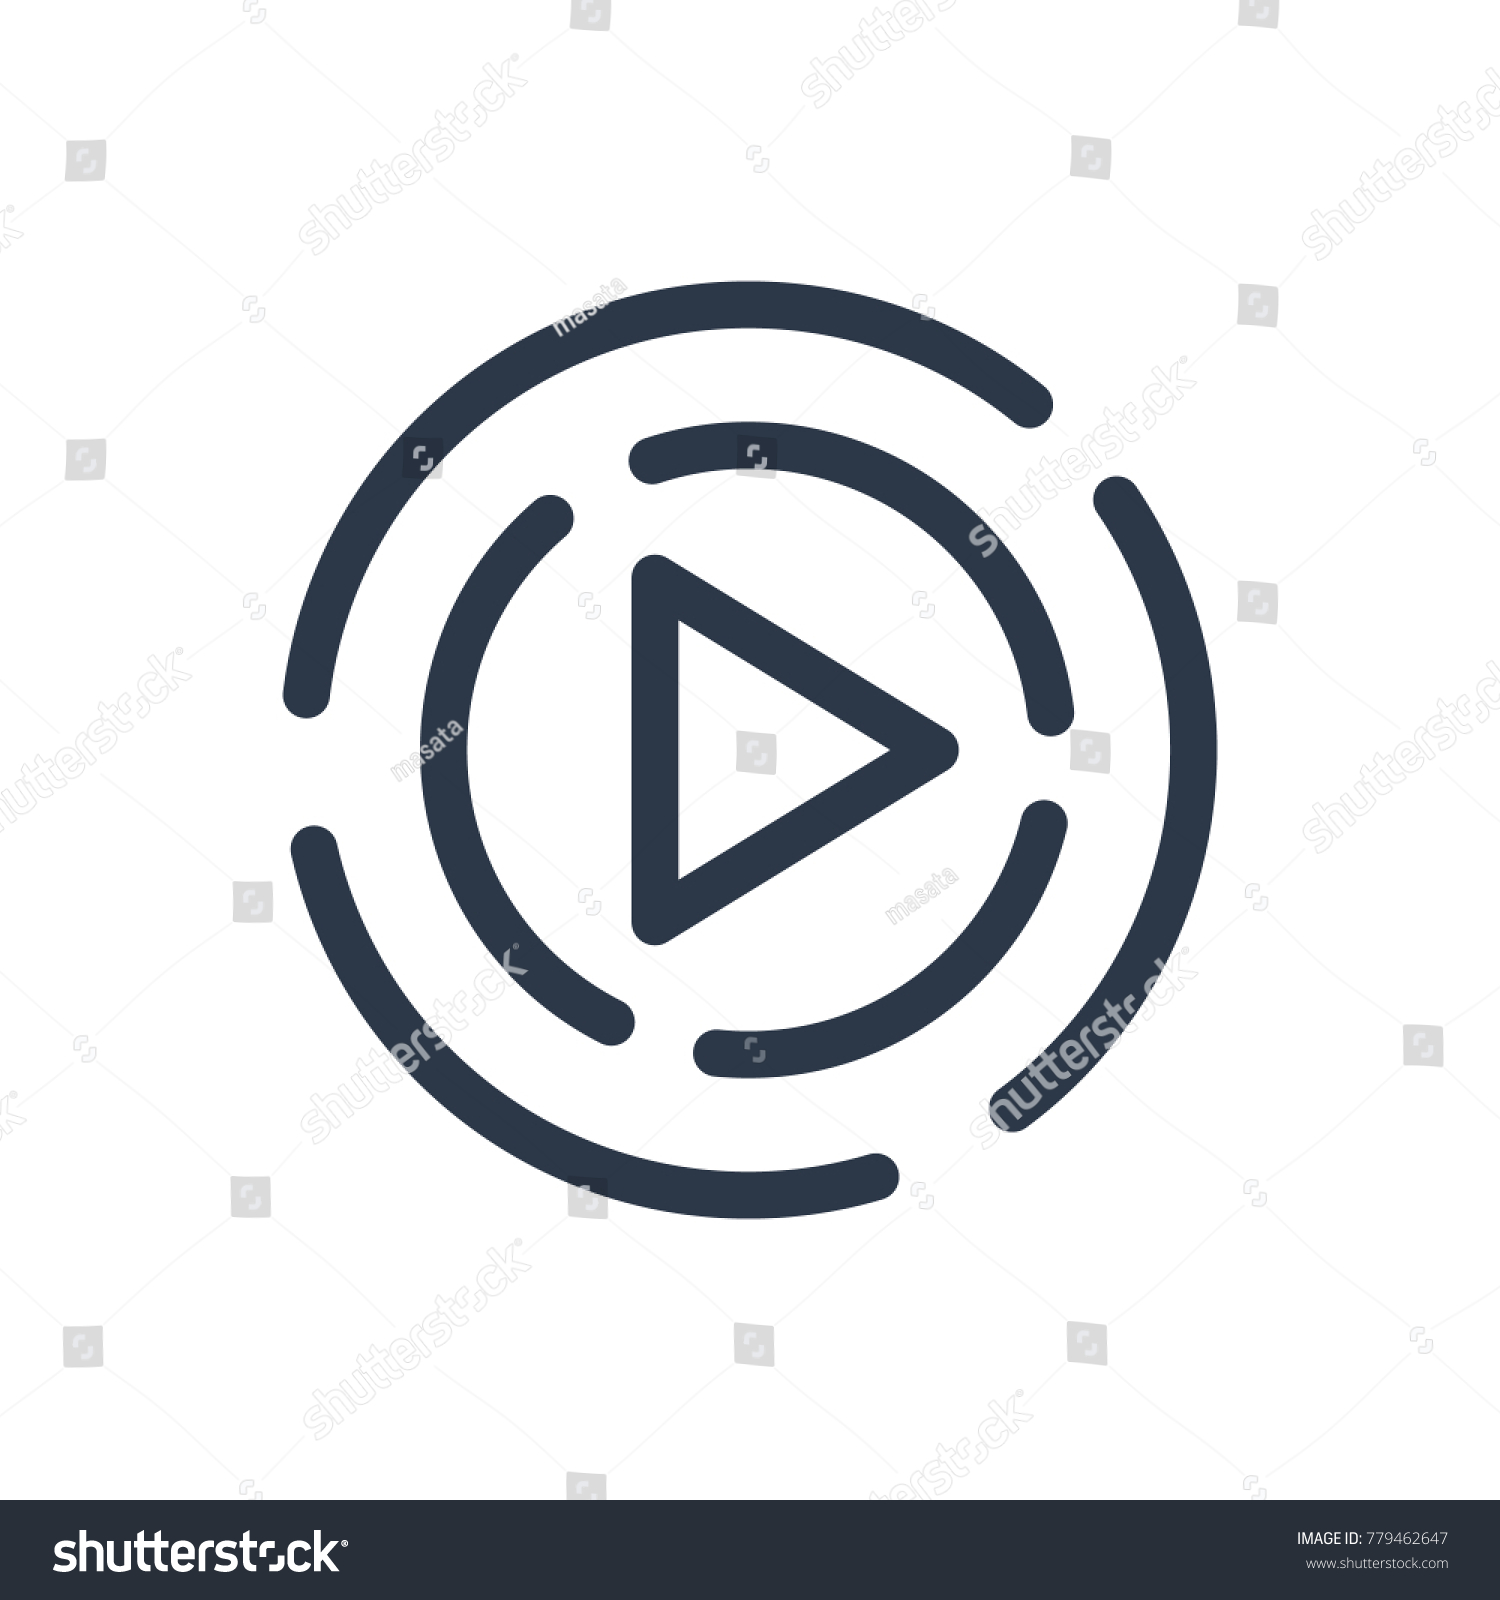 Play Icon Isolated Start Play Icon Stock Vector 2018 779462647